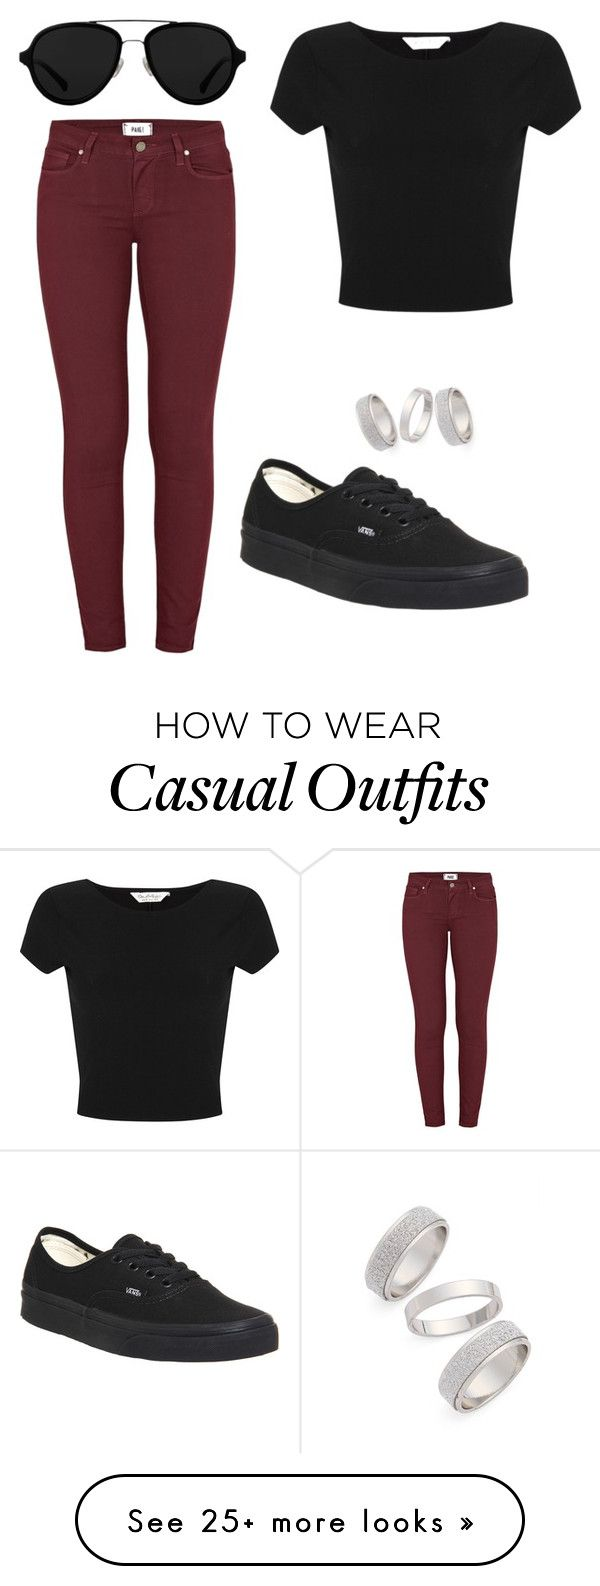 """Casual"" by luciajane on Polyvore featuring Paige Denim, Miss Selfridge, 3.1 Phillip Lim, Topshop, Vans, women's clothing, women, female, woman and misses"